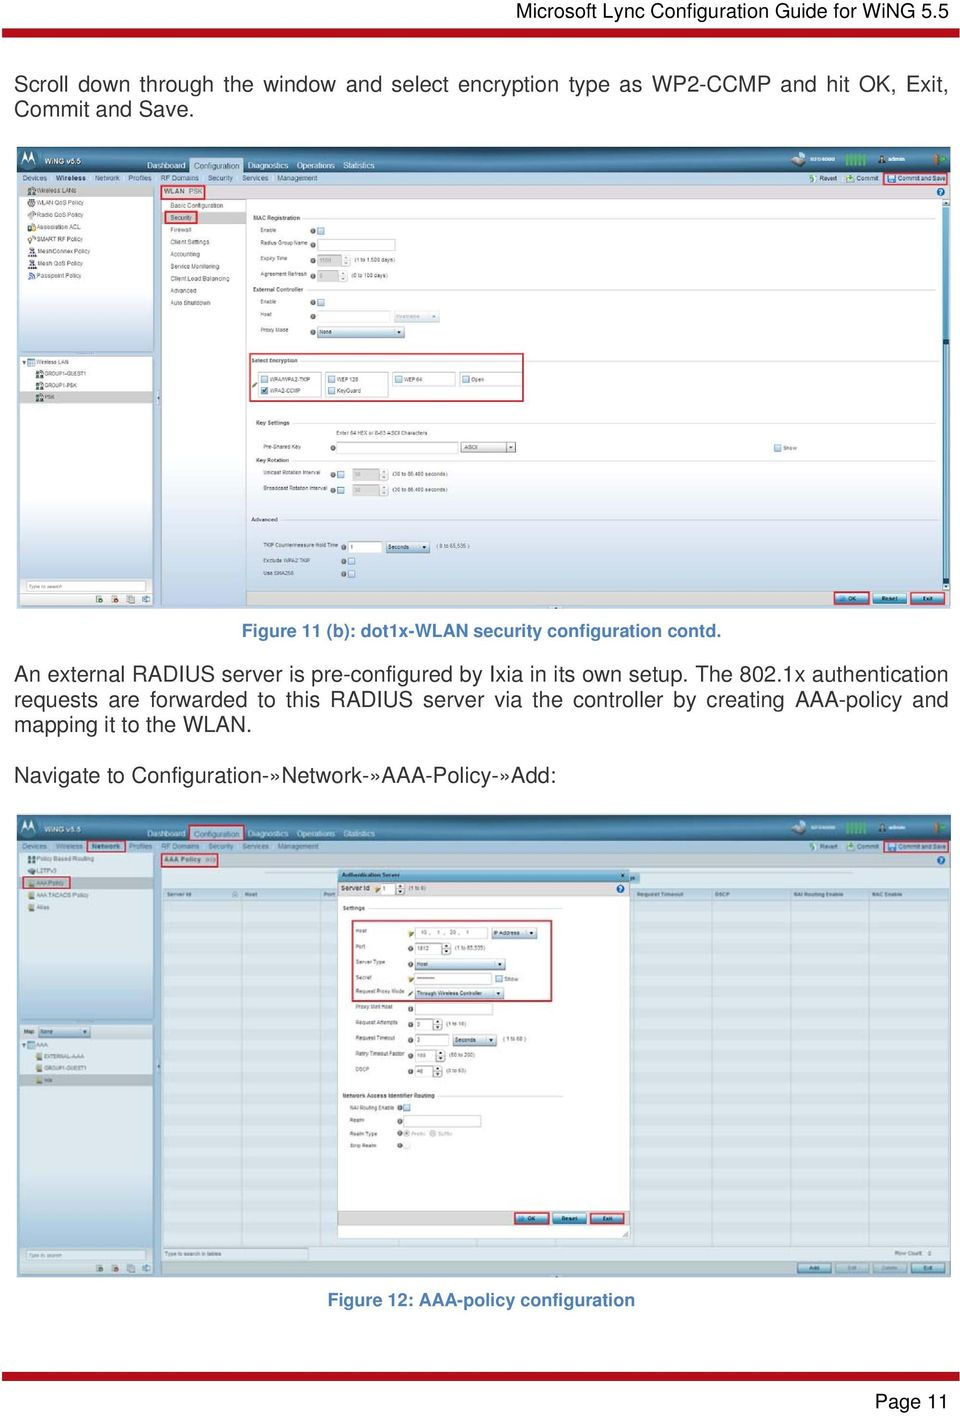 An external RADIUS server is pre-configured by Ixia in its own setup. The 802.